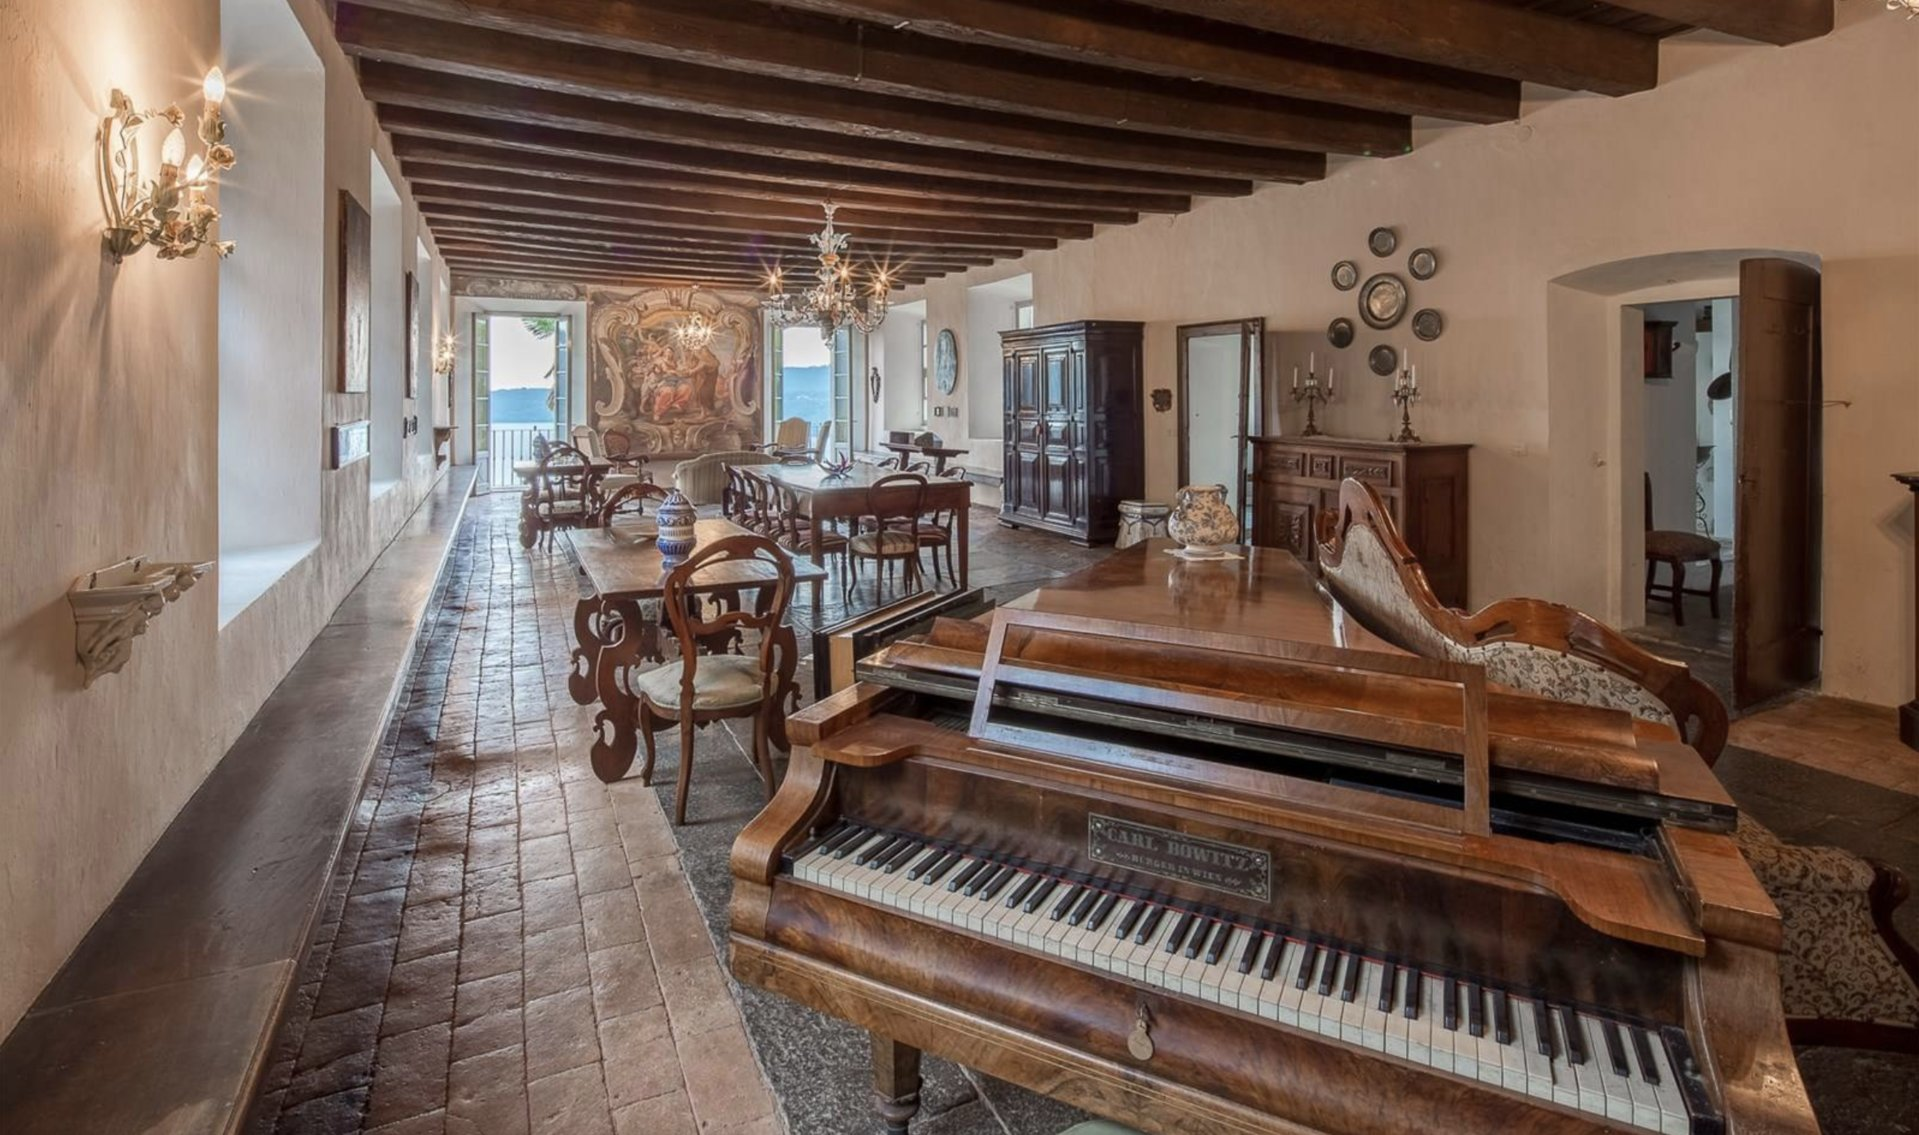 Historic property former convent for sale in Orta -  large salon